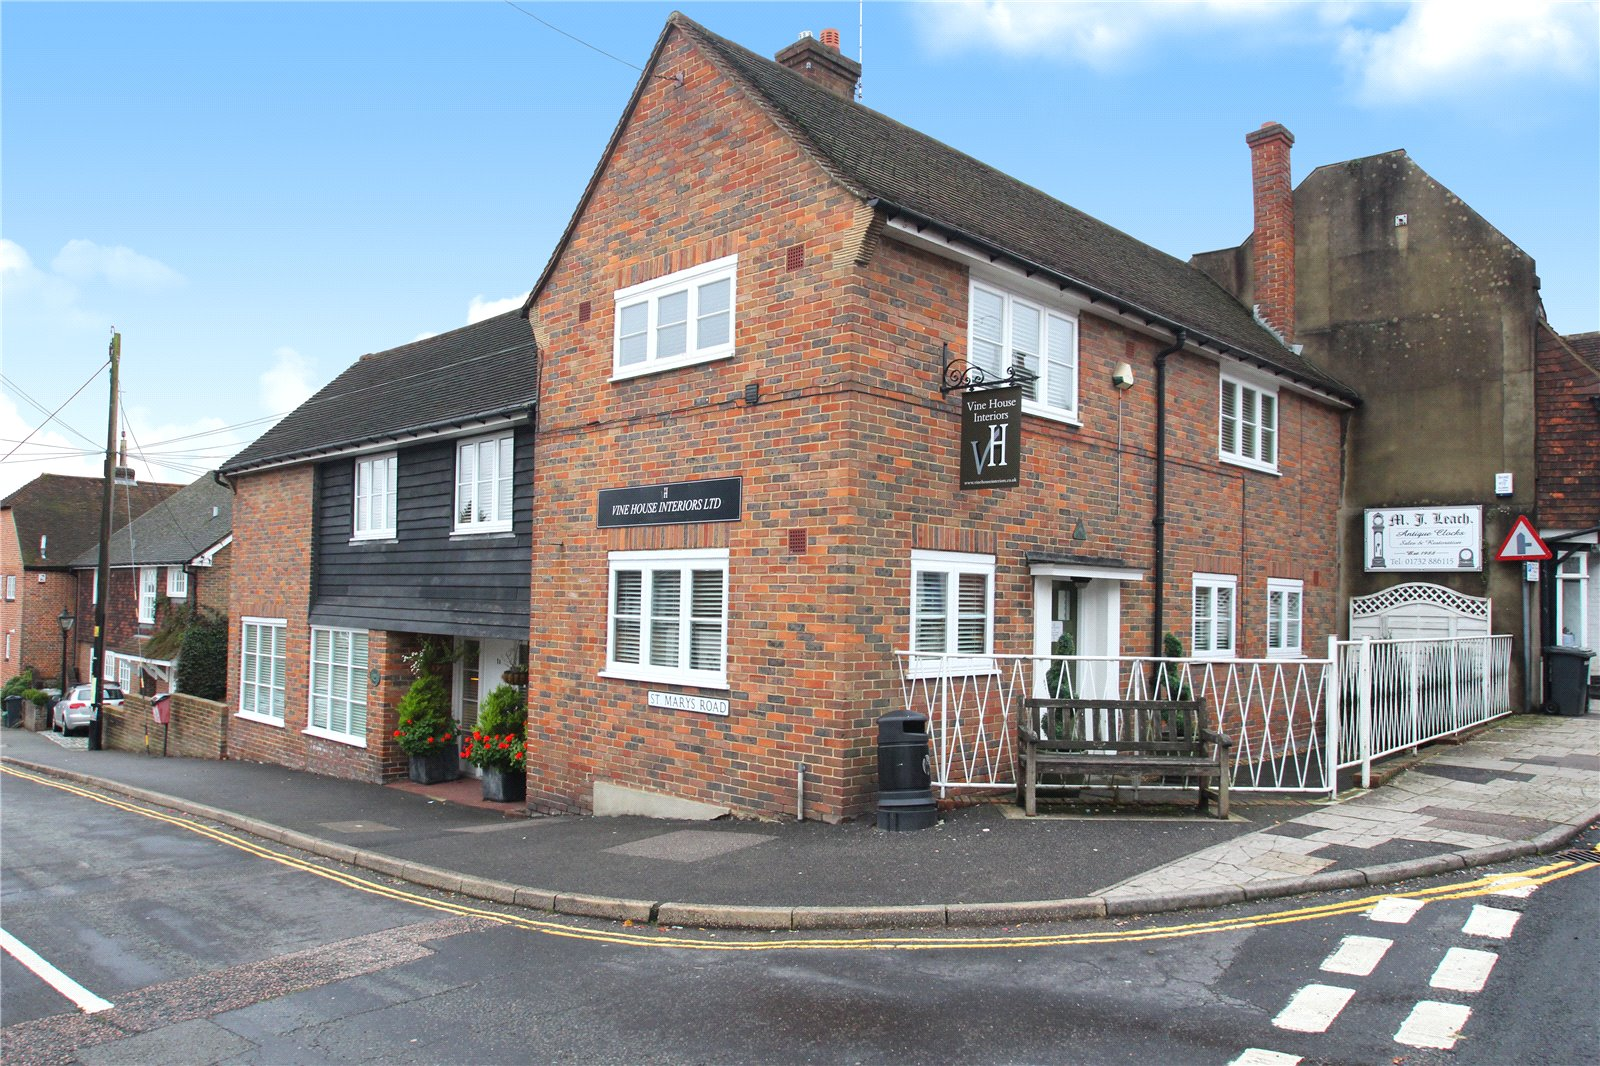 St. Marys Road, Wrotham - £800,000